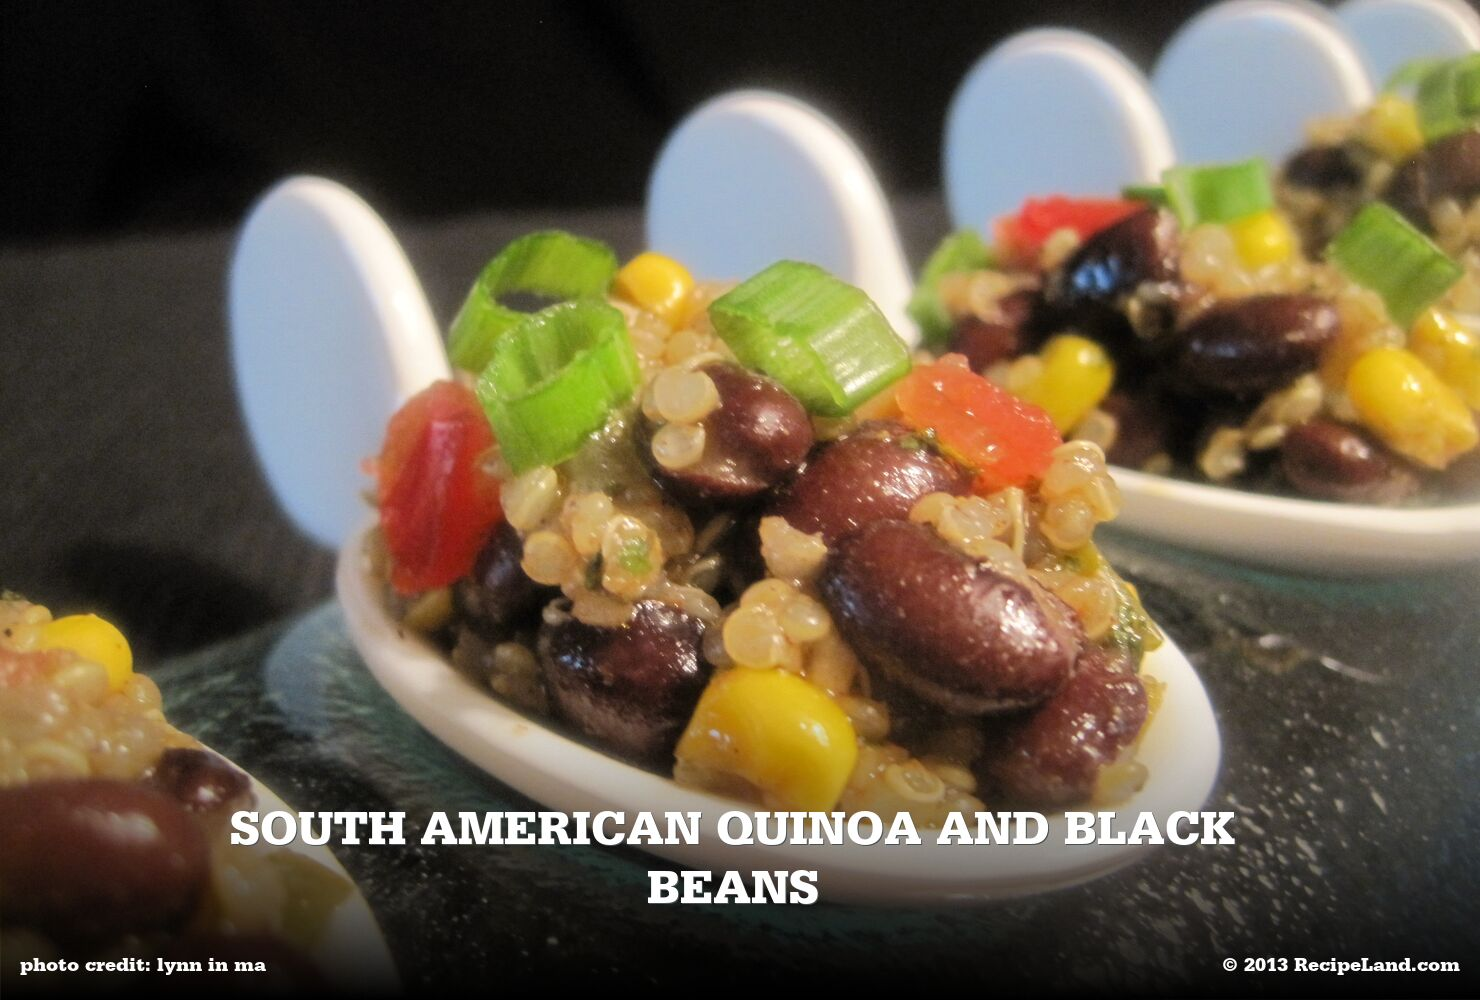 South American Quinoa and Black Beans